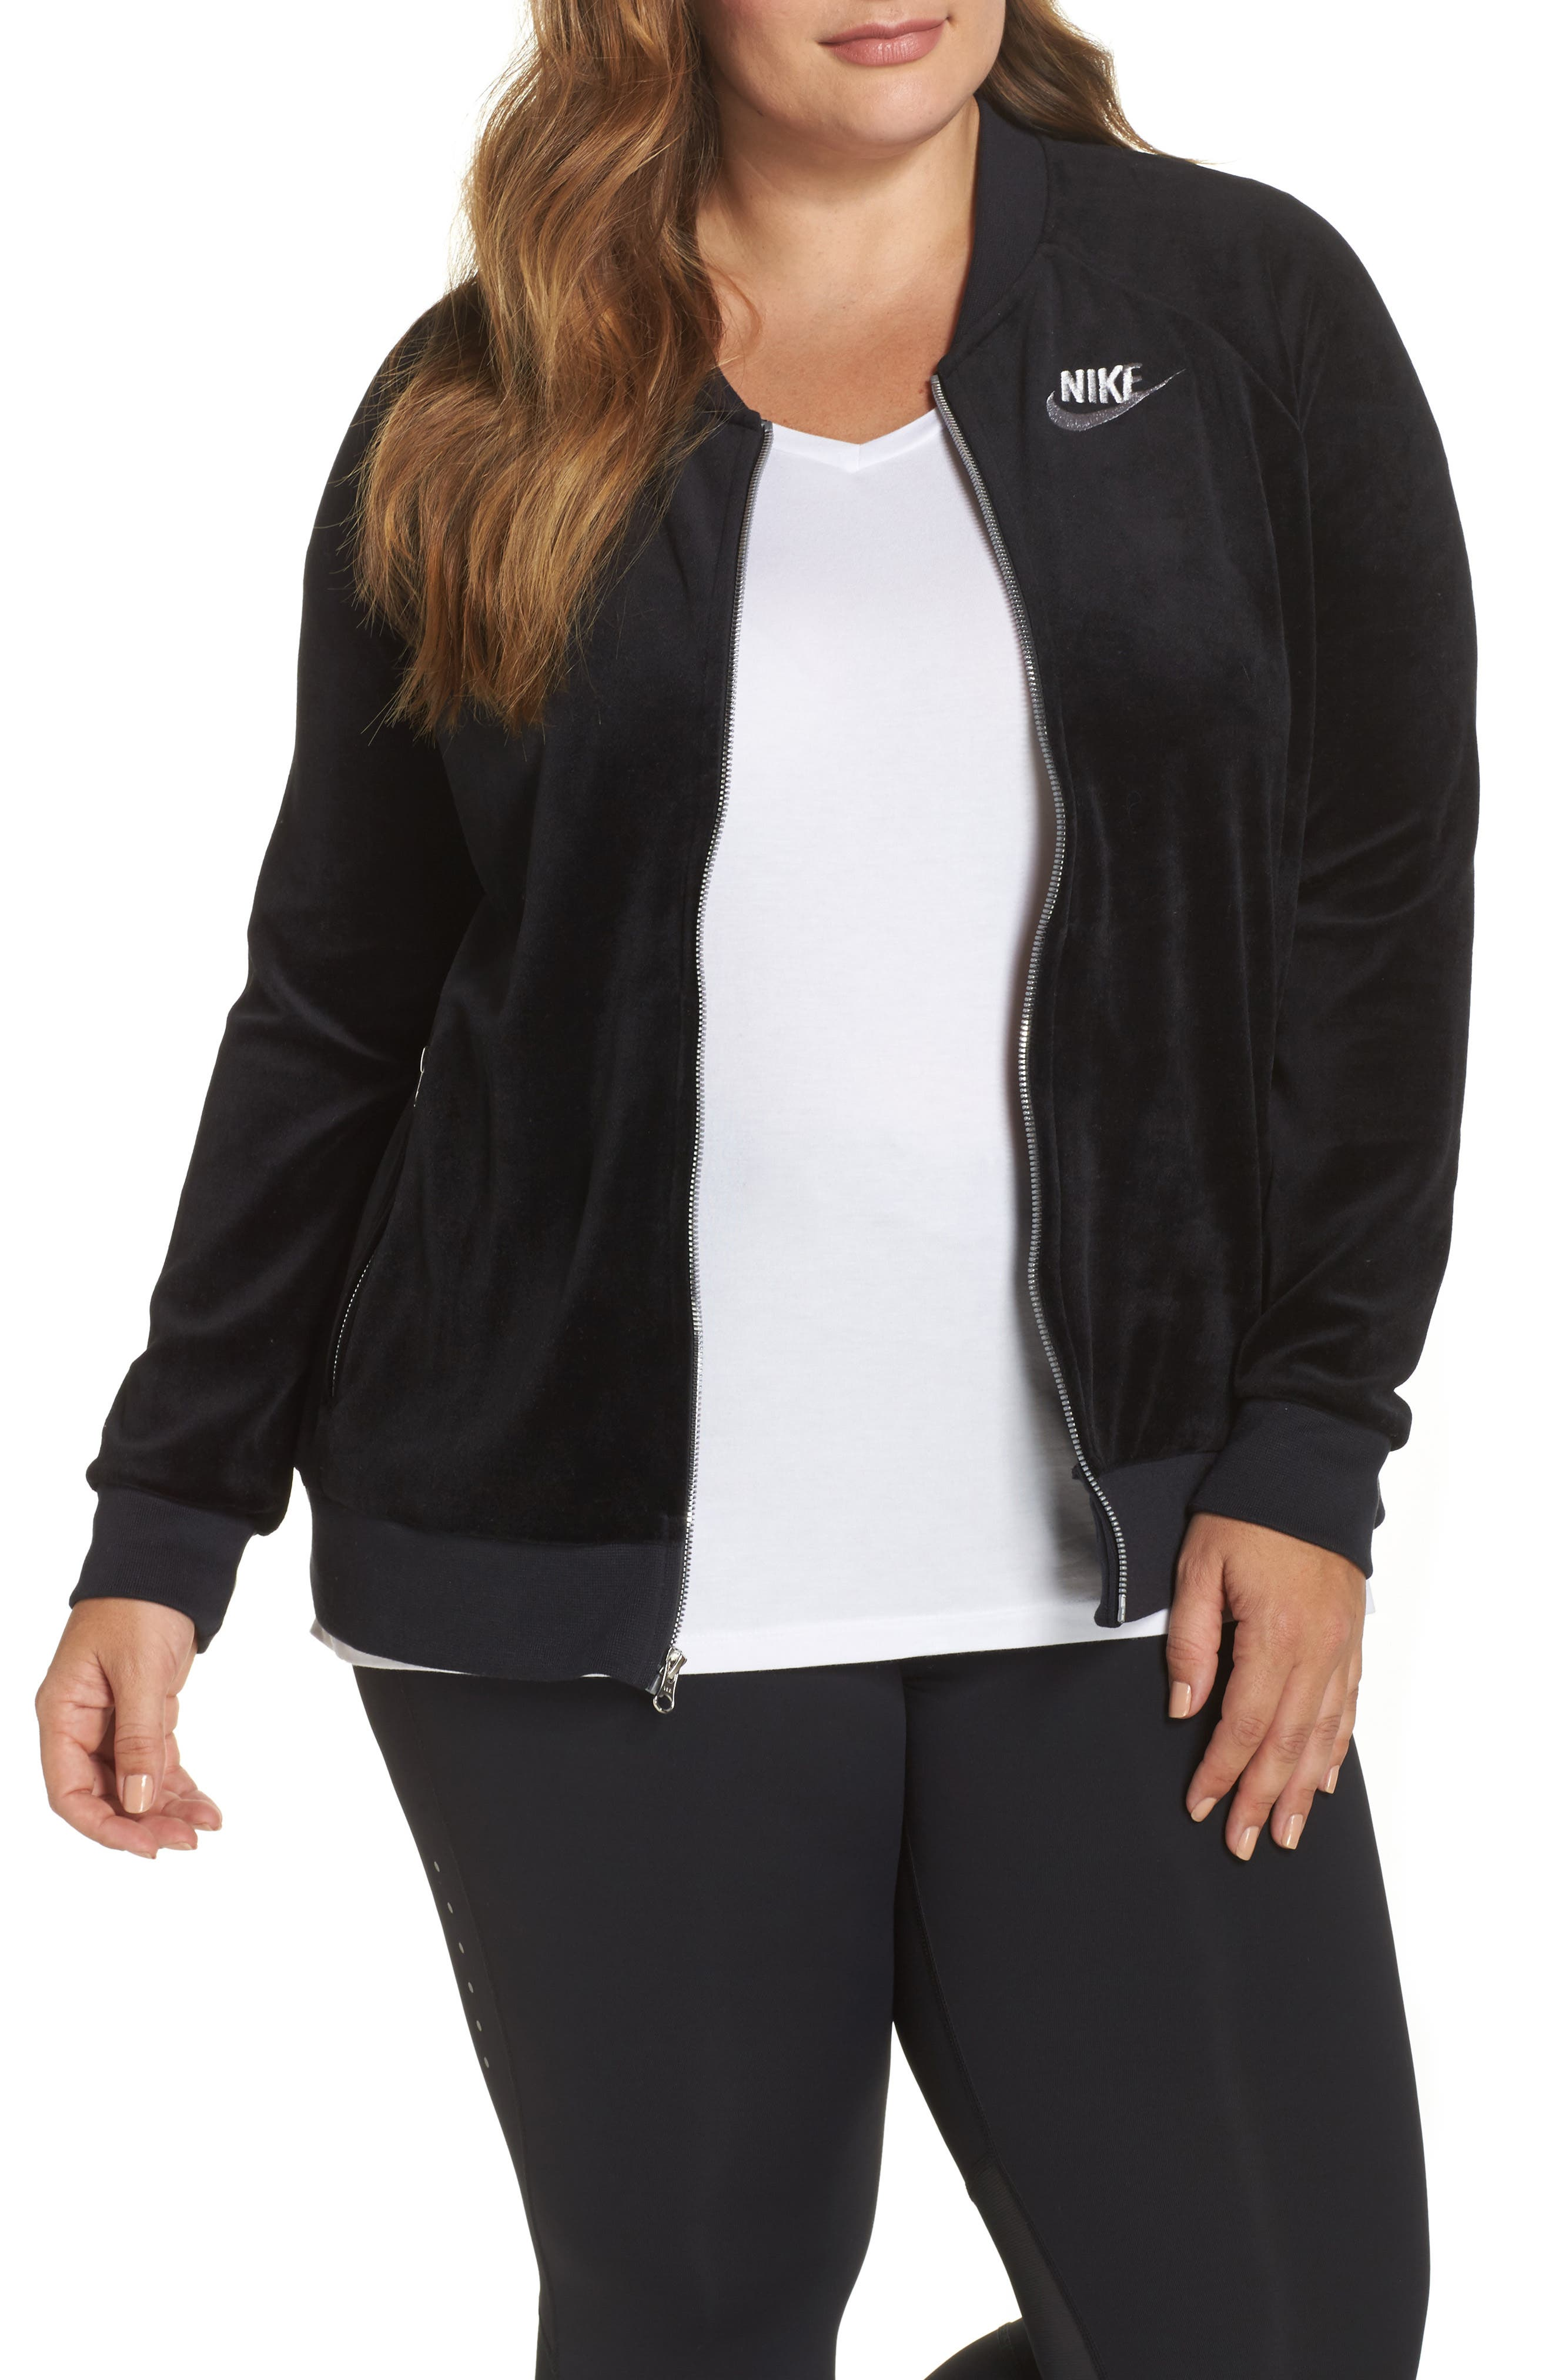 Velour Jacket,                             Main thumbnail 1, color,                             Black/ Metallic Silver